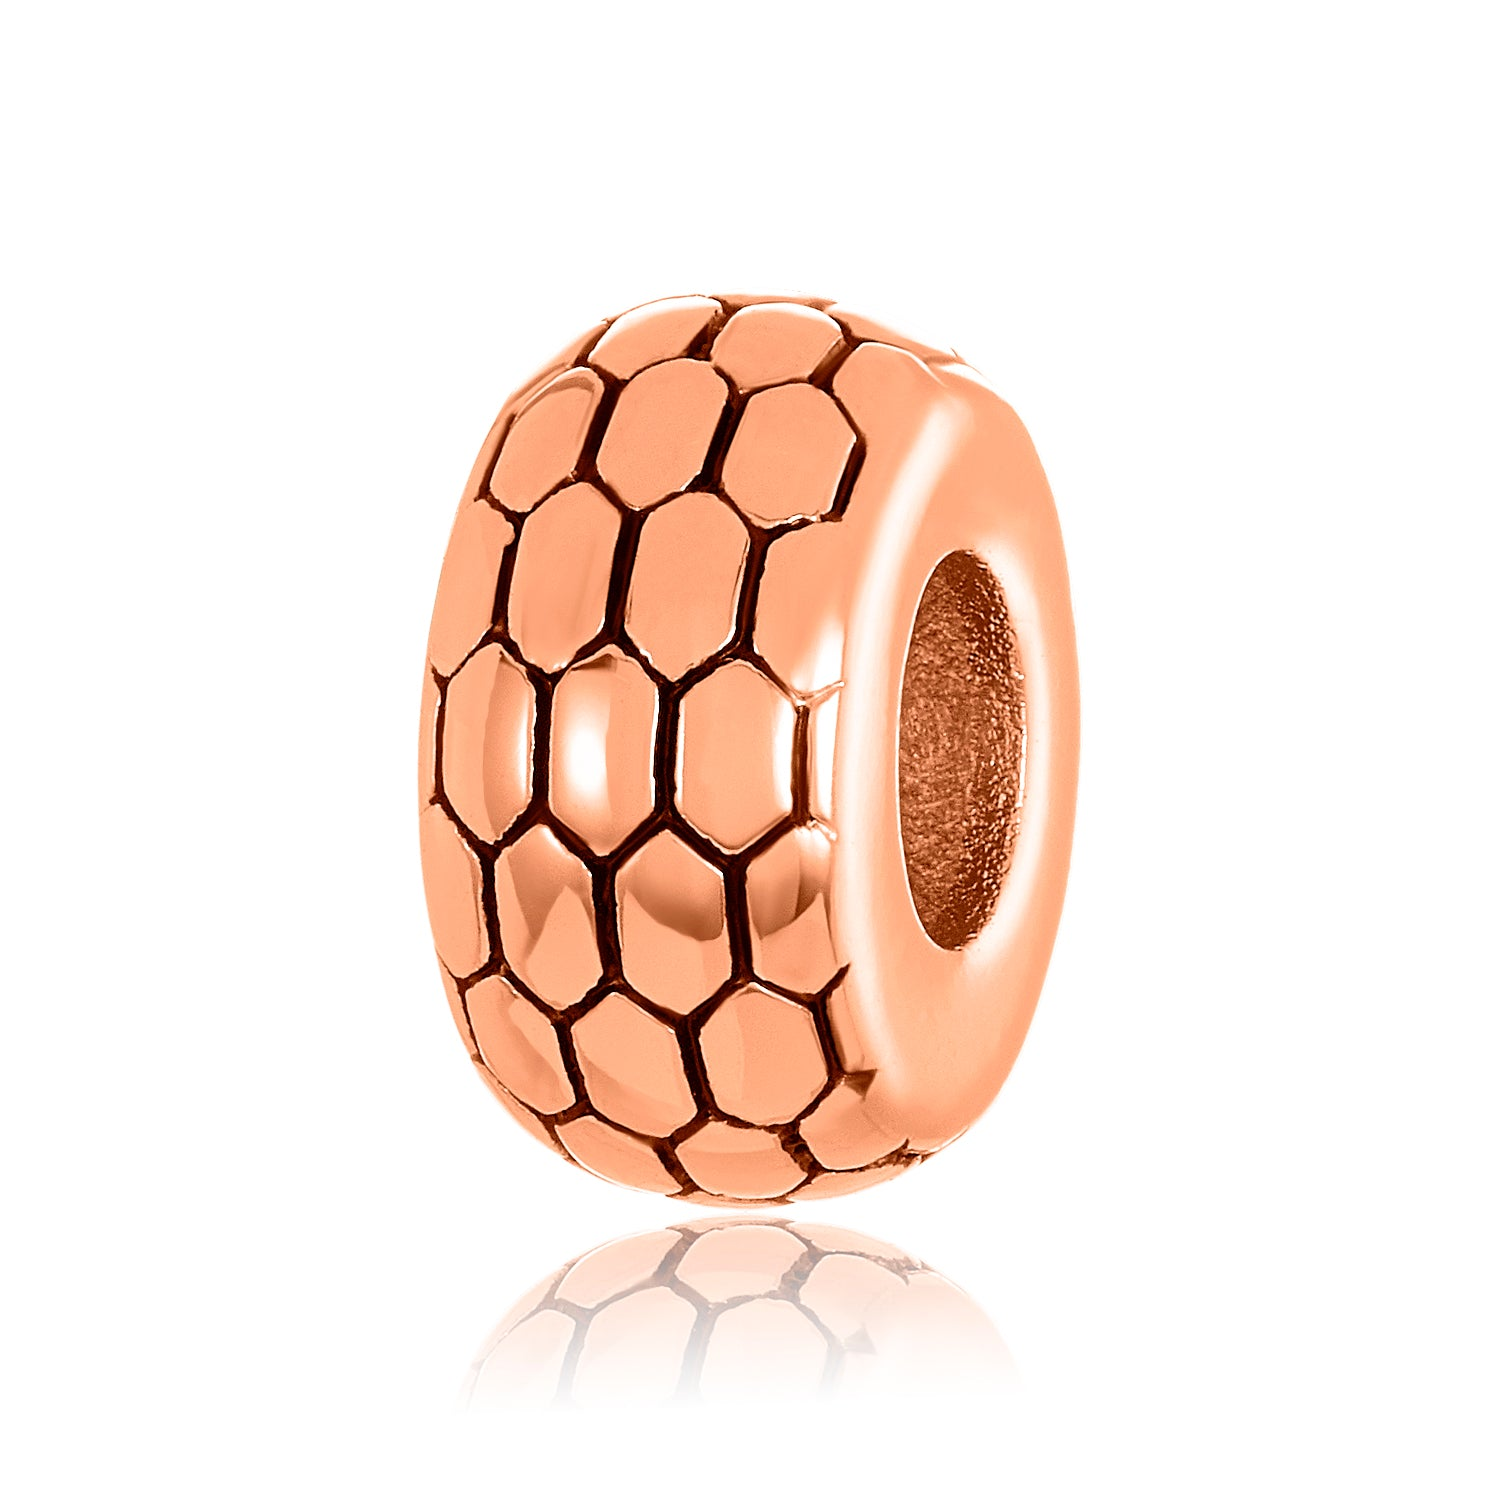 Rose gold charm/bead spacer with a patterned design for use on DBW interchangeable bangle bracelets.  Rose gold charm/ bead spacers sold as pair.